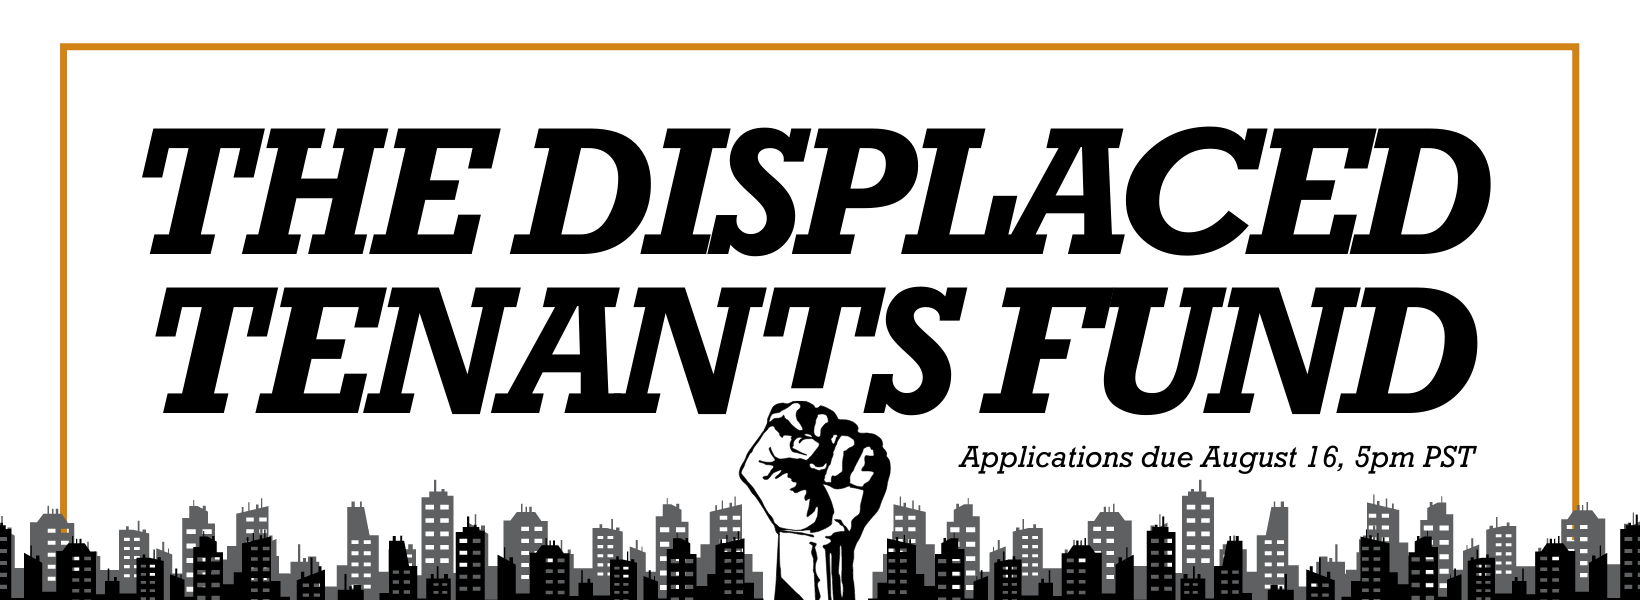 Rectangular banner with white background. A black and grey city skyline is across the bottom with a fist emerging from the center in protest. Black text reads The Displaced Tenants Fund